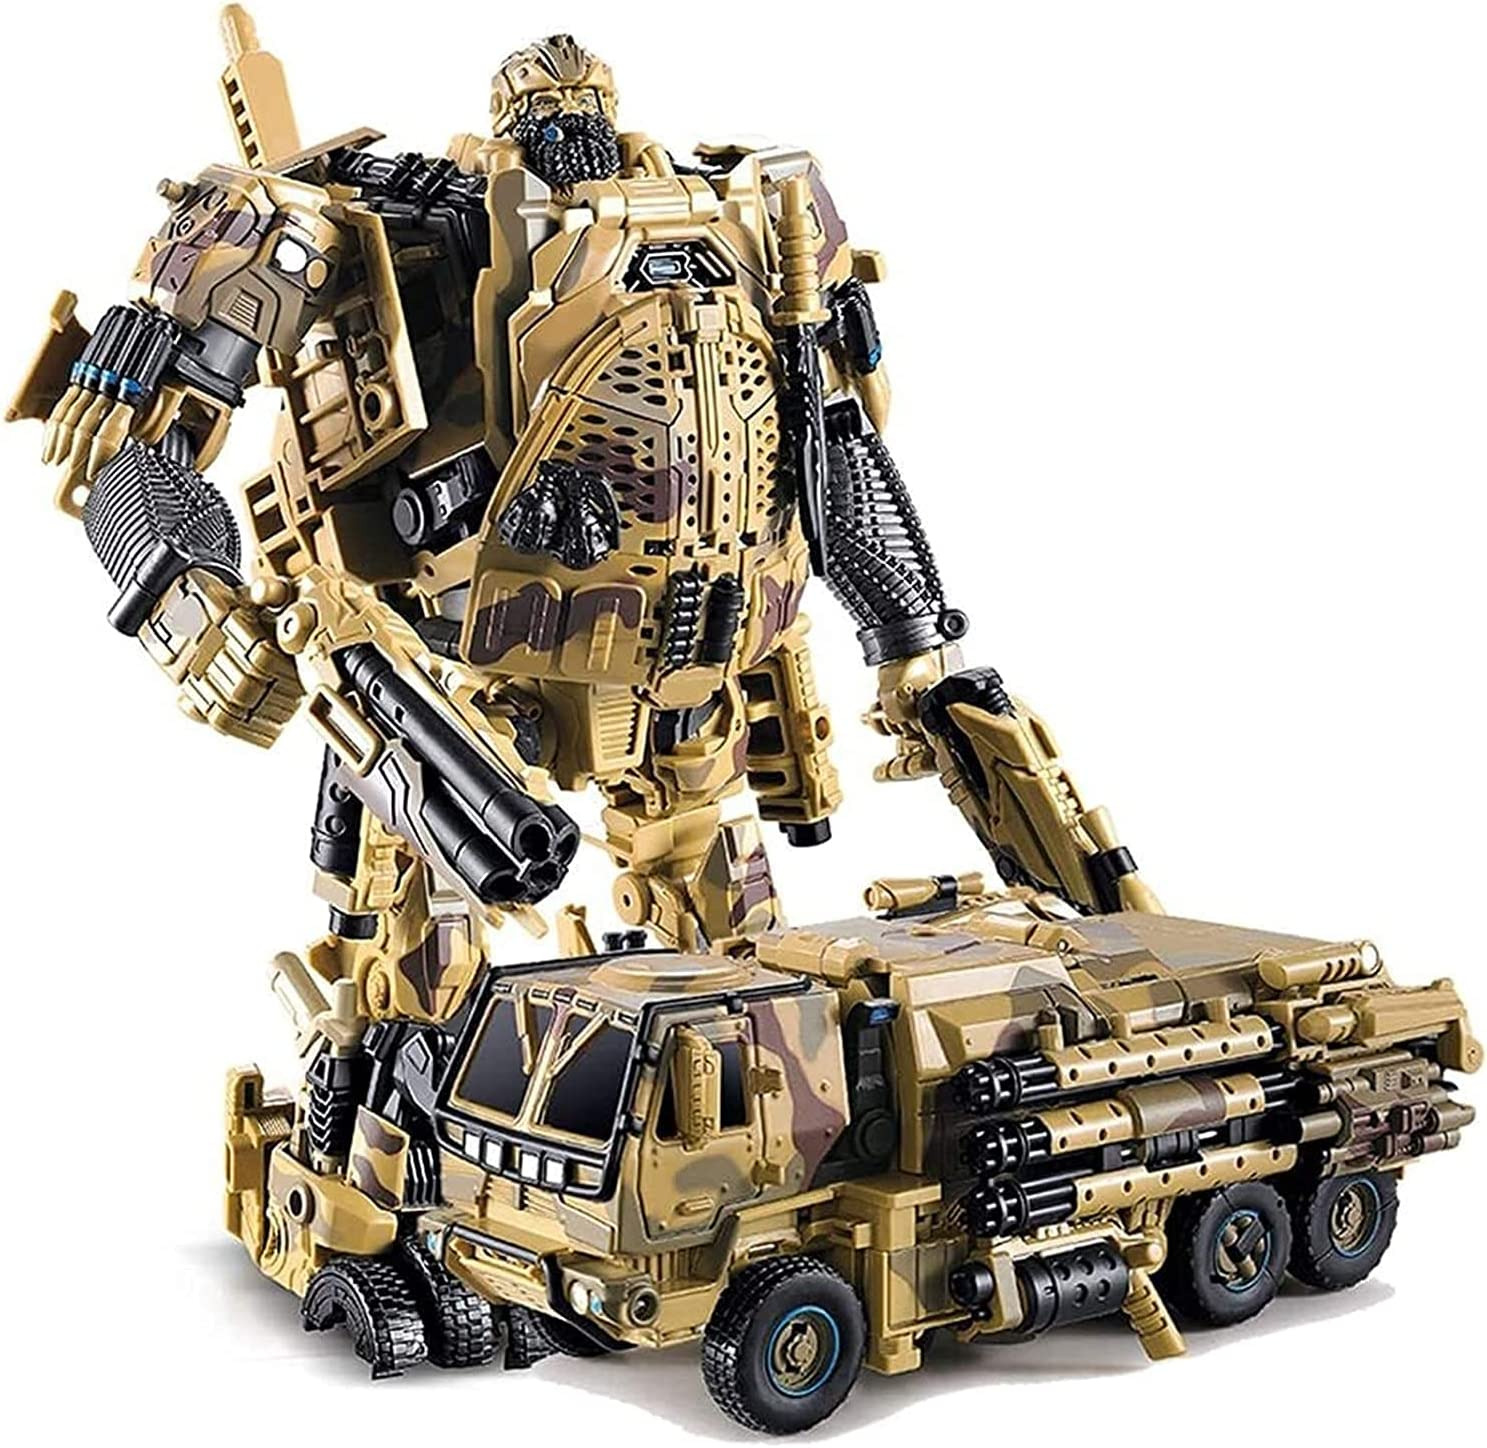 RSVPhandcrafted Trǎnsformérs Robot Max 85% OFF Toy Alloy M02 Robo free shipping Revision